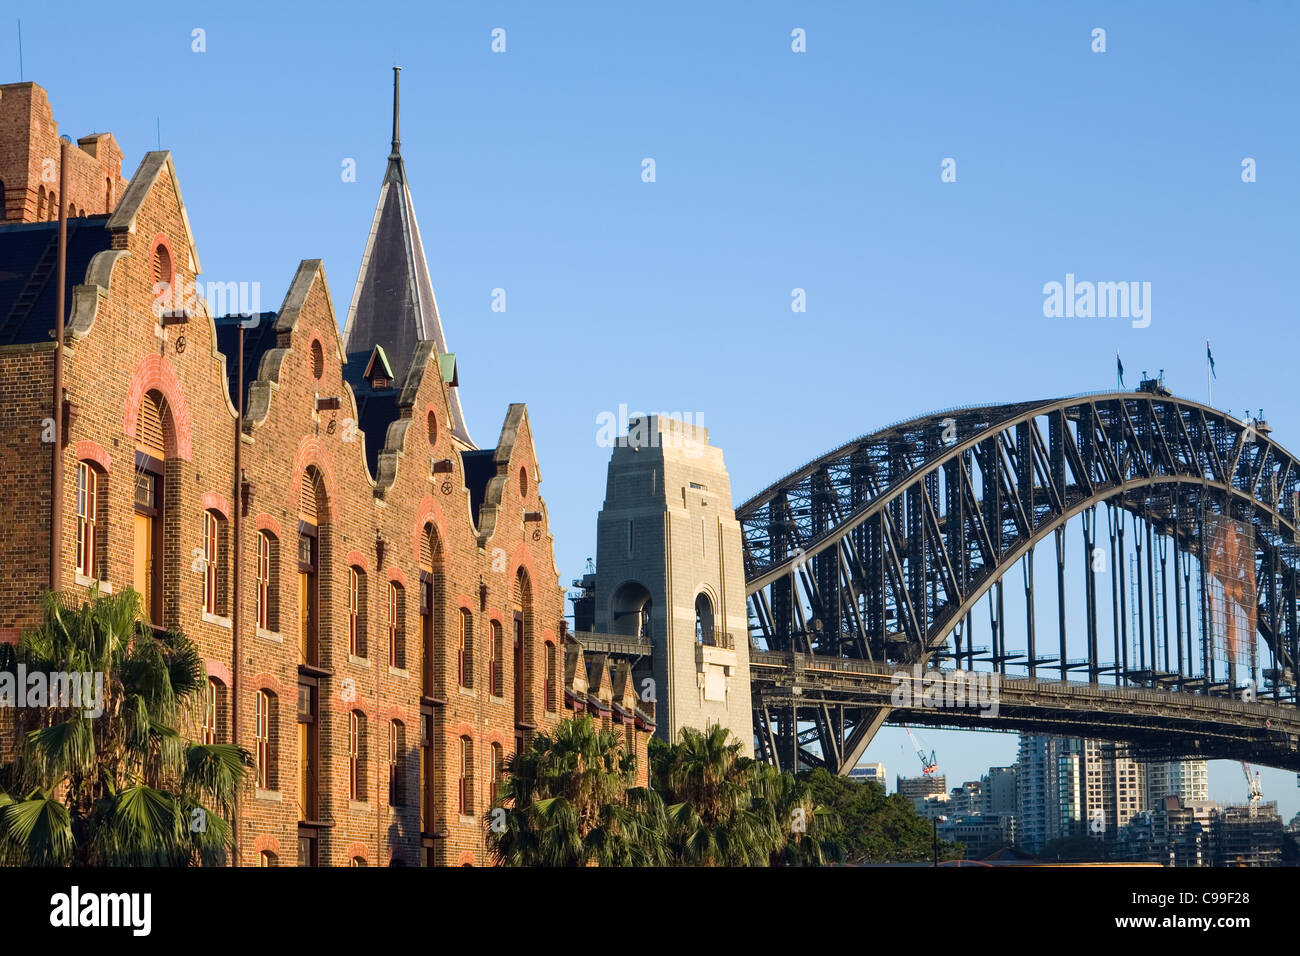 Die Architektur der Australasian Steam Navigation Co. Gebäude und Harbour Bridge.  Sydney, New South Wales, Stockbild